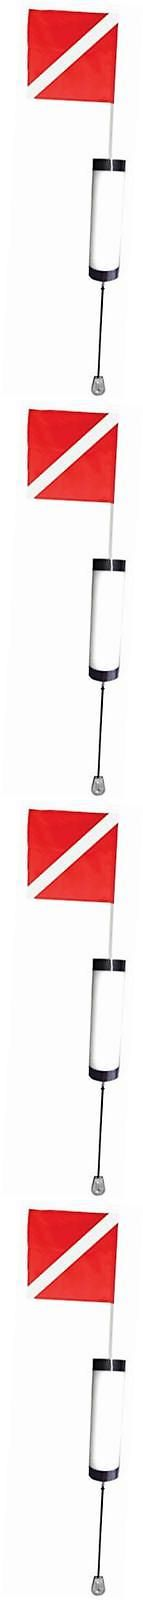 Flags and Markers 73999: Buoy Dive Flag Kit -> BUY IT NOW ONLY: $48.64 on eBay!